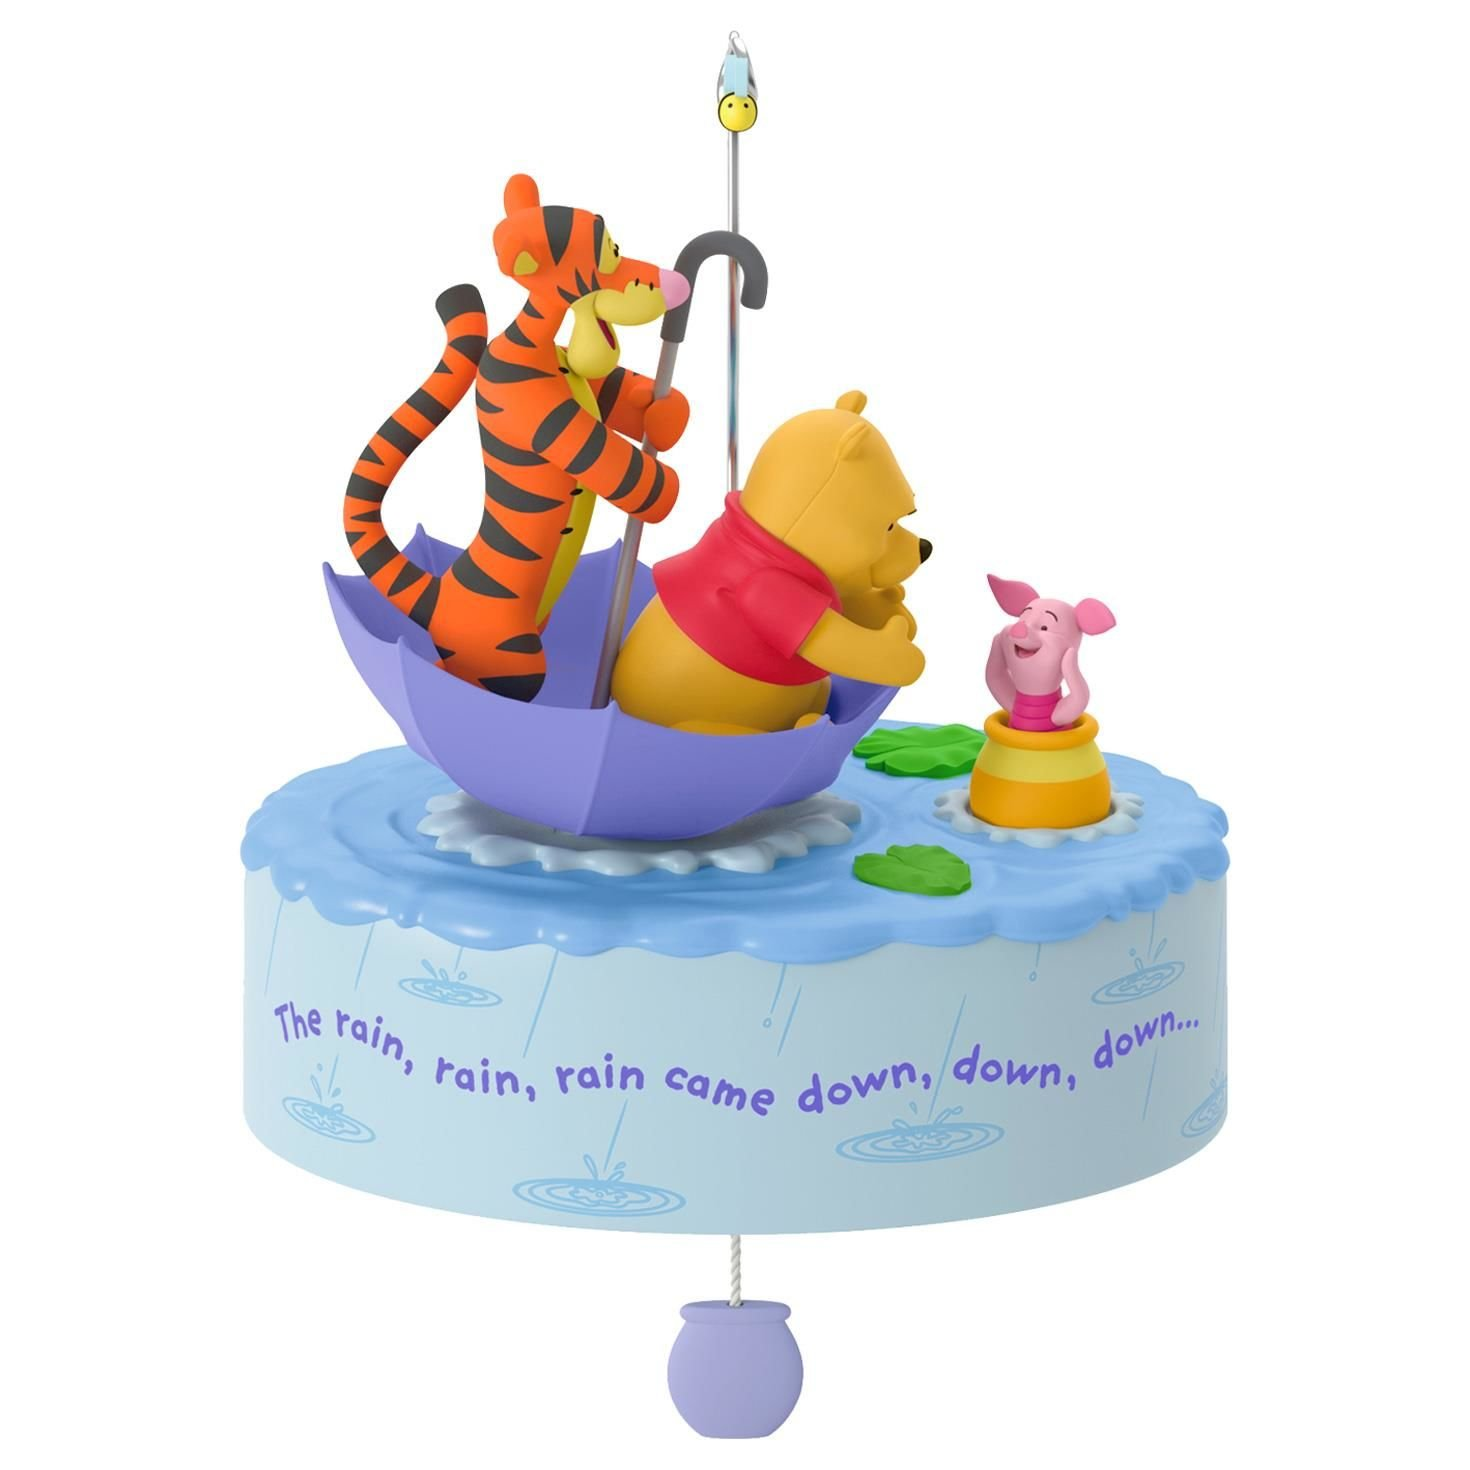 Hallmark Keepsake 2017 Winnie the Pooh A Blustery Day Musical Christmas Ornament With Motion